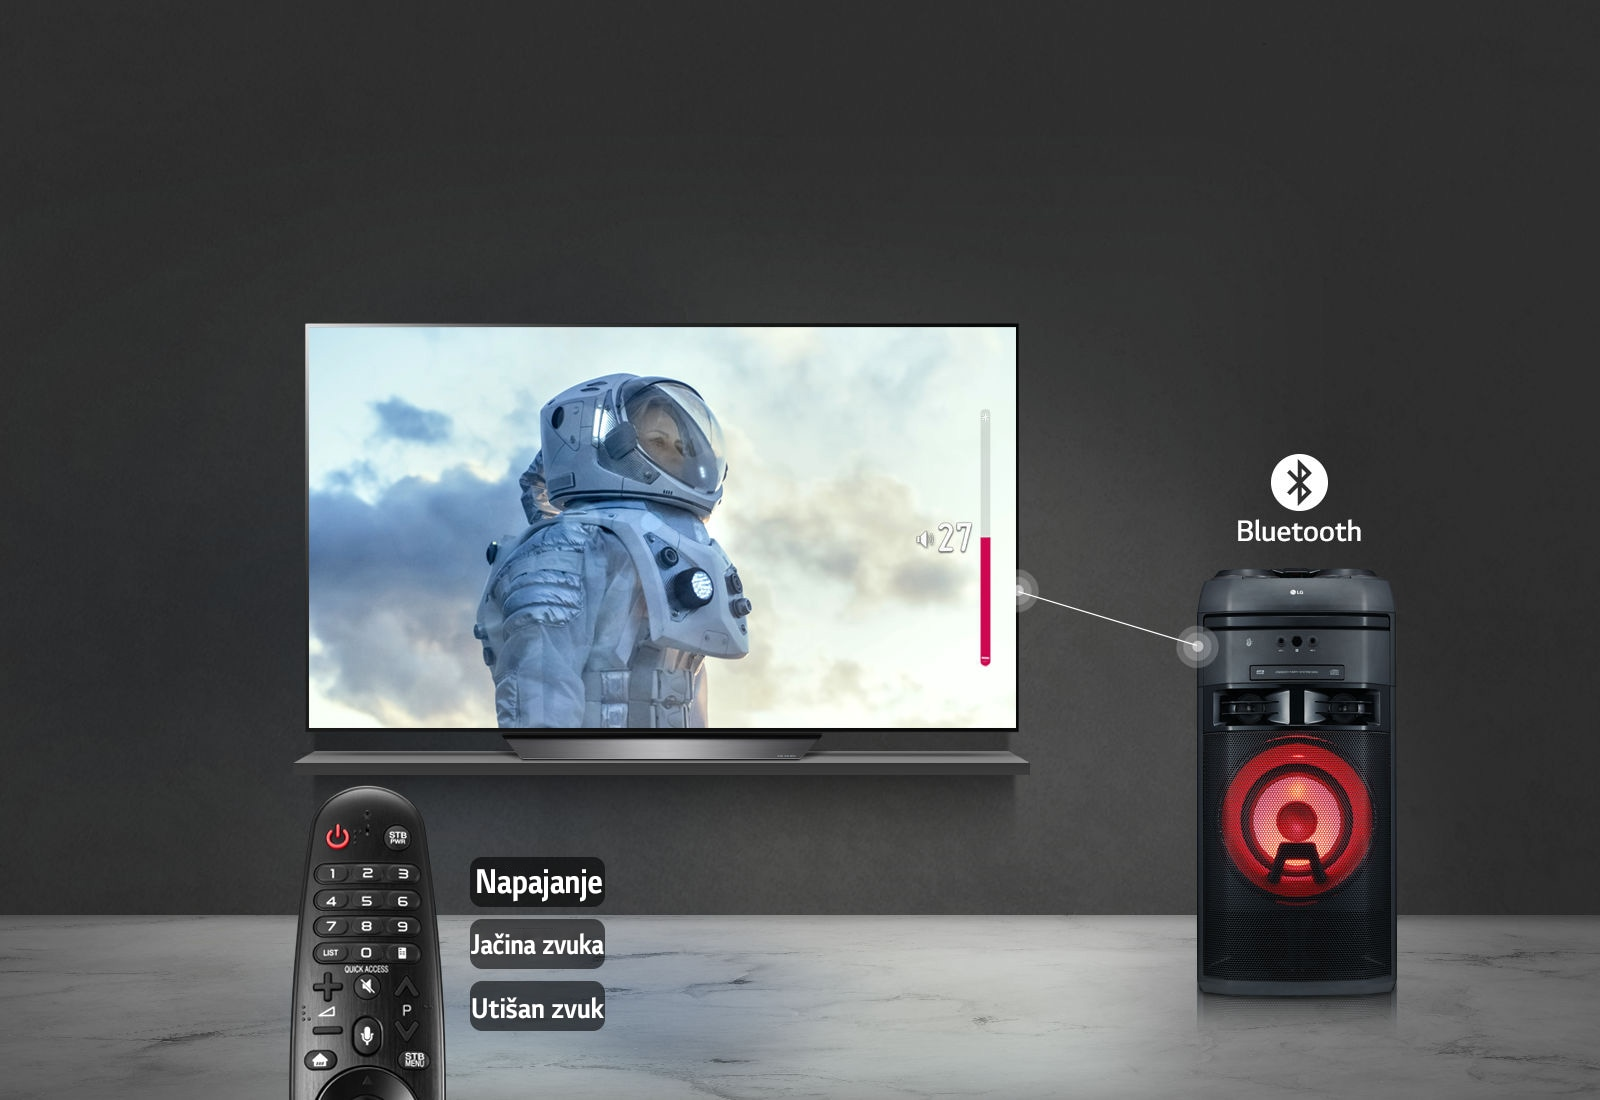 https://www.lg.com/rs/images/AV/features/08_OK55_TV_Sound_Sync_Desktop.jpg